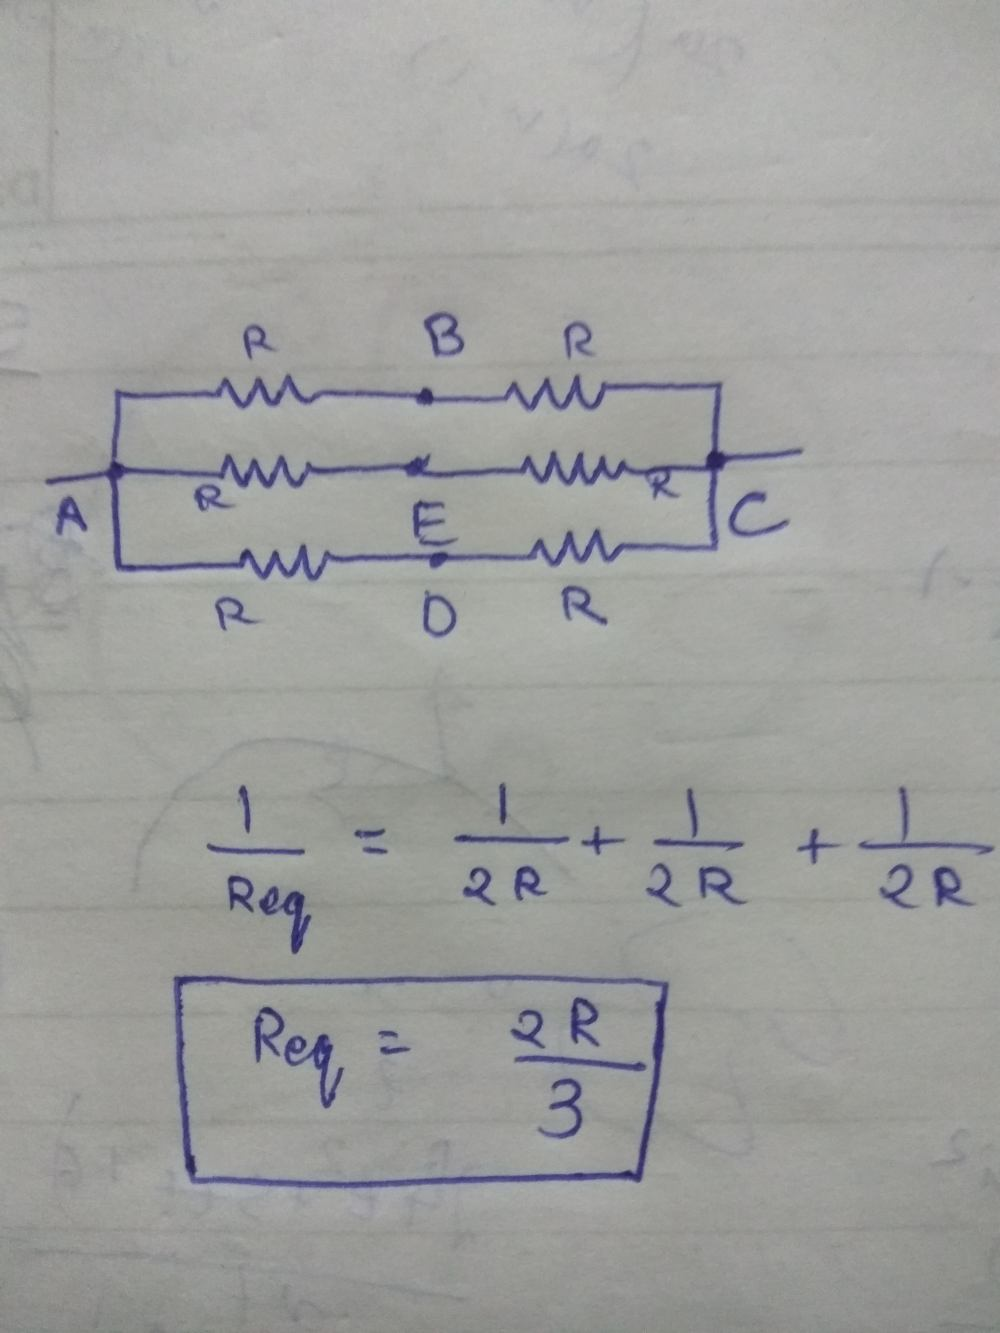 medium resolution of applying the formula for parallel resistors we get the equivalent resistance of the circuit as 2r 3